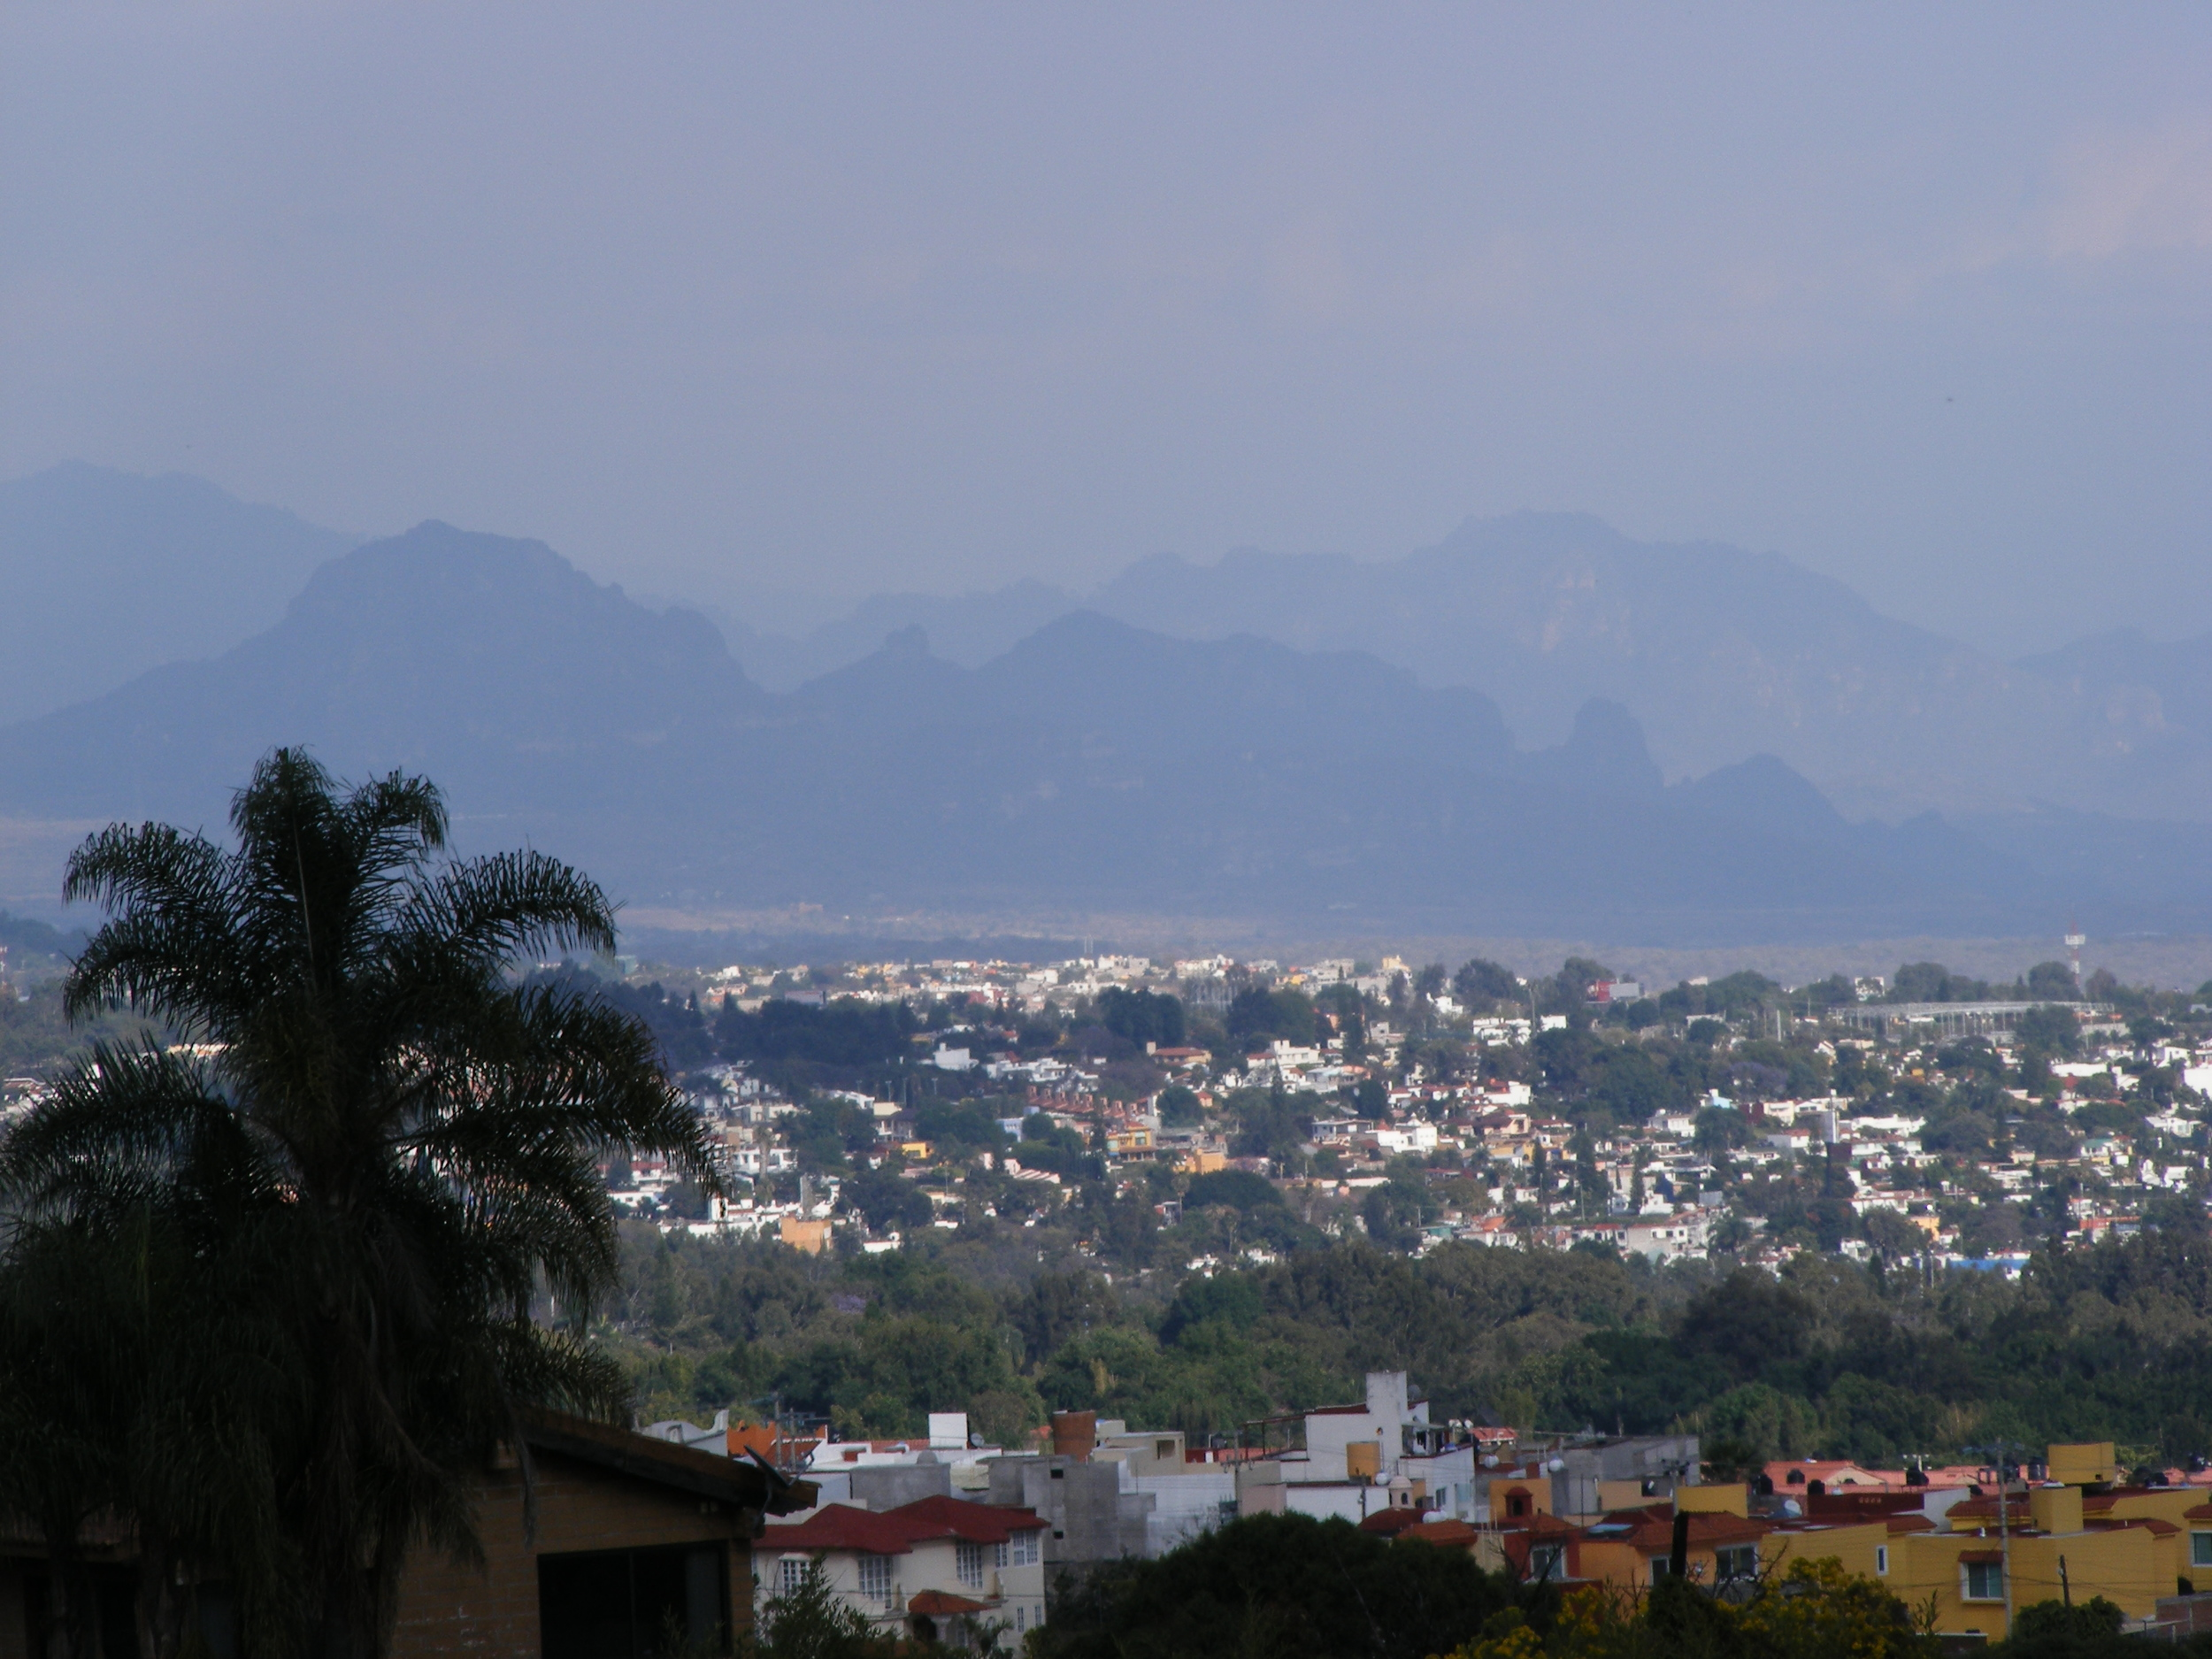 View of Cuernavaca from the Quest base.